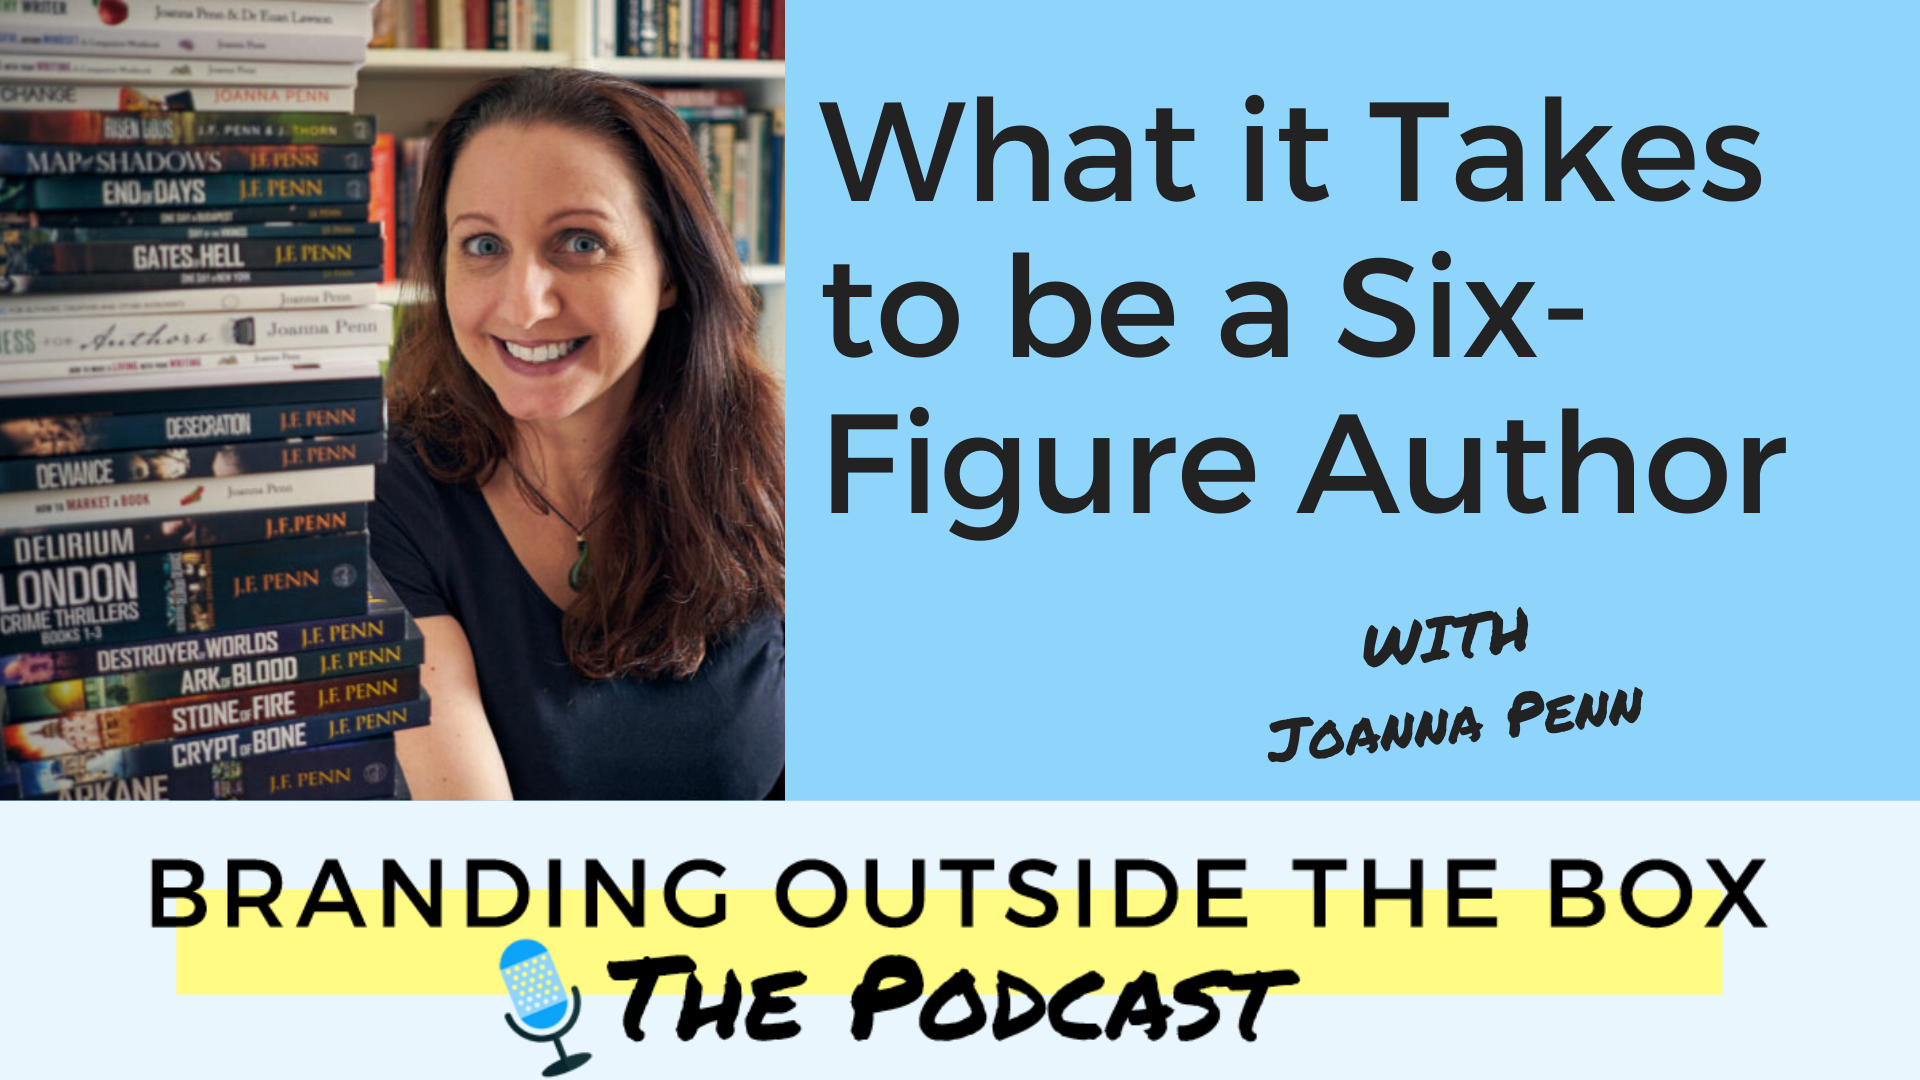 What it Takes to be a Six-Figure Author